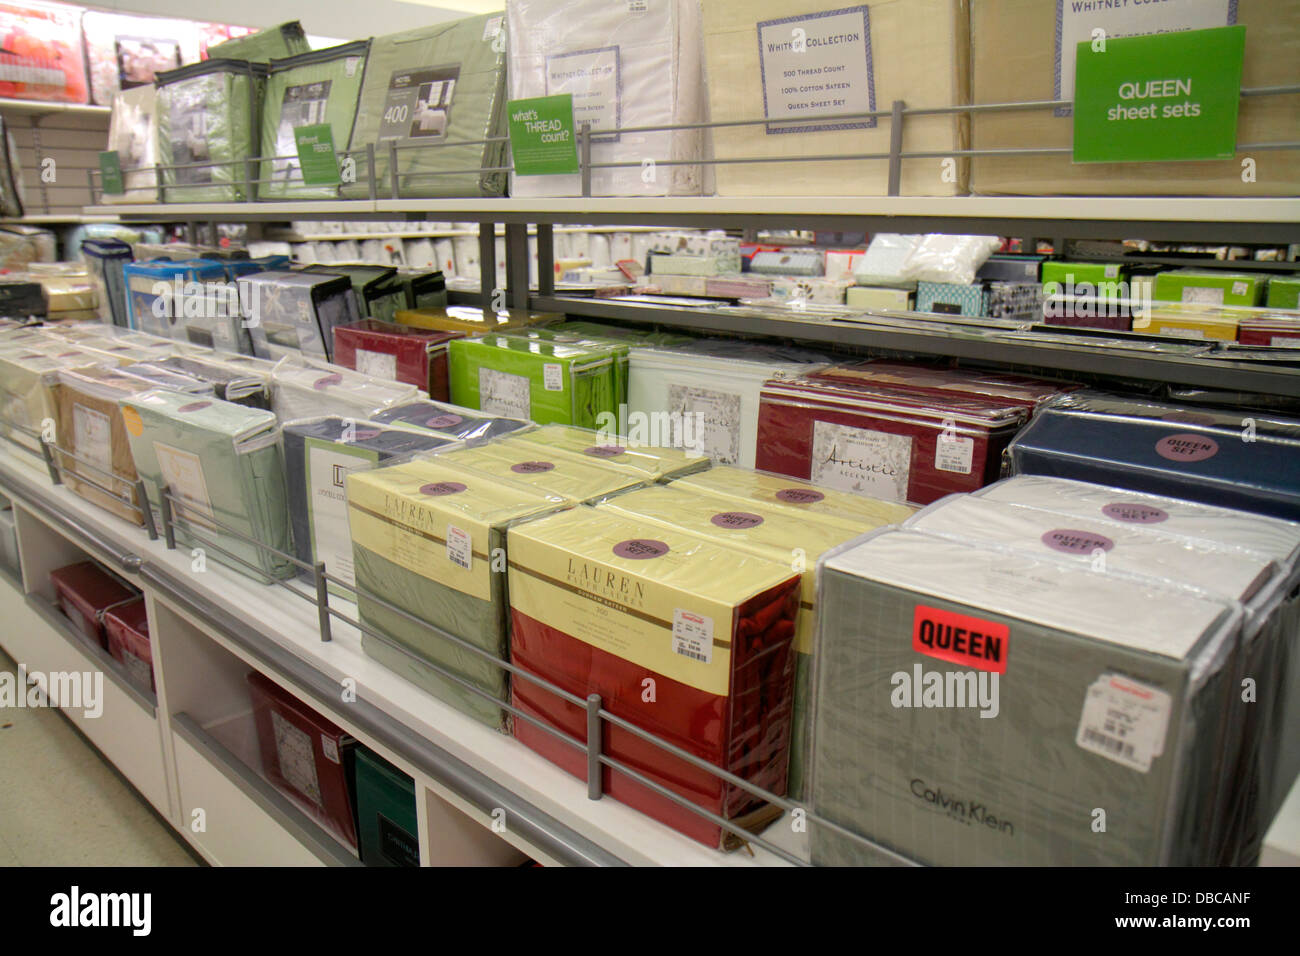 Miami Florida Aventura Marshalls Home Goods discount department store  retail display sale sheets bedding. Miami Florida Aventura Marshalls Home Goods discount department